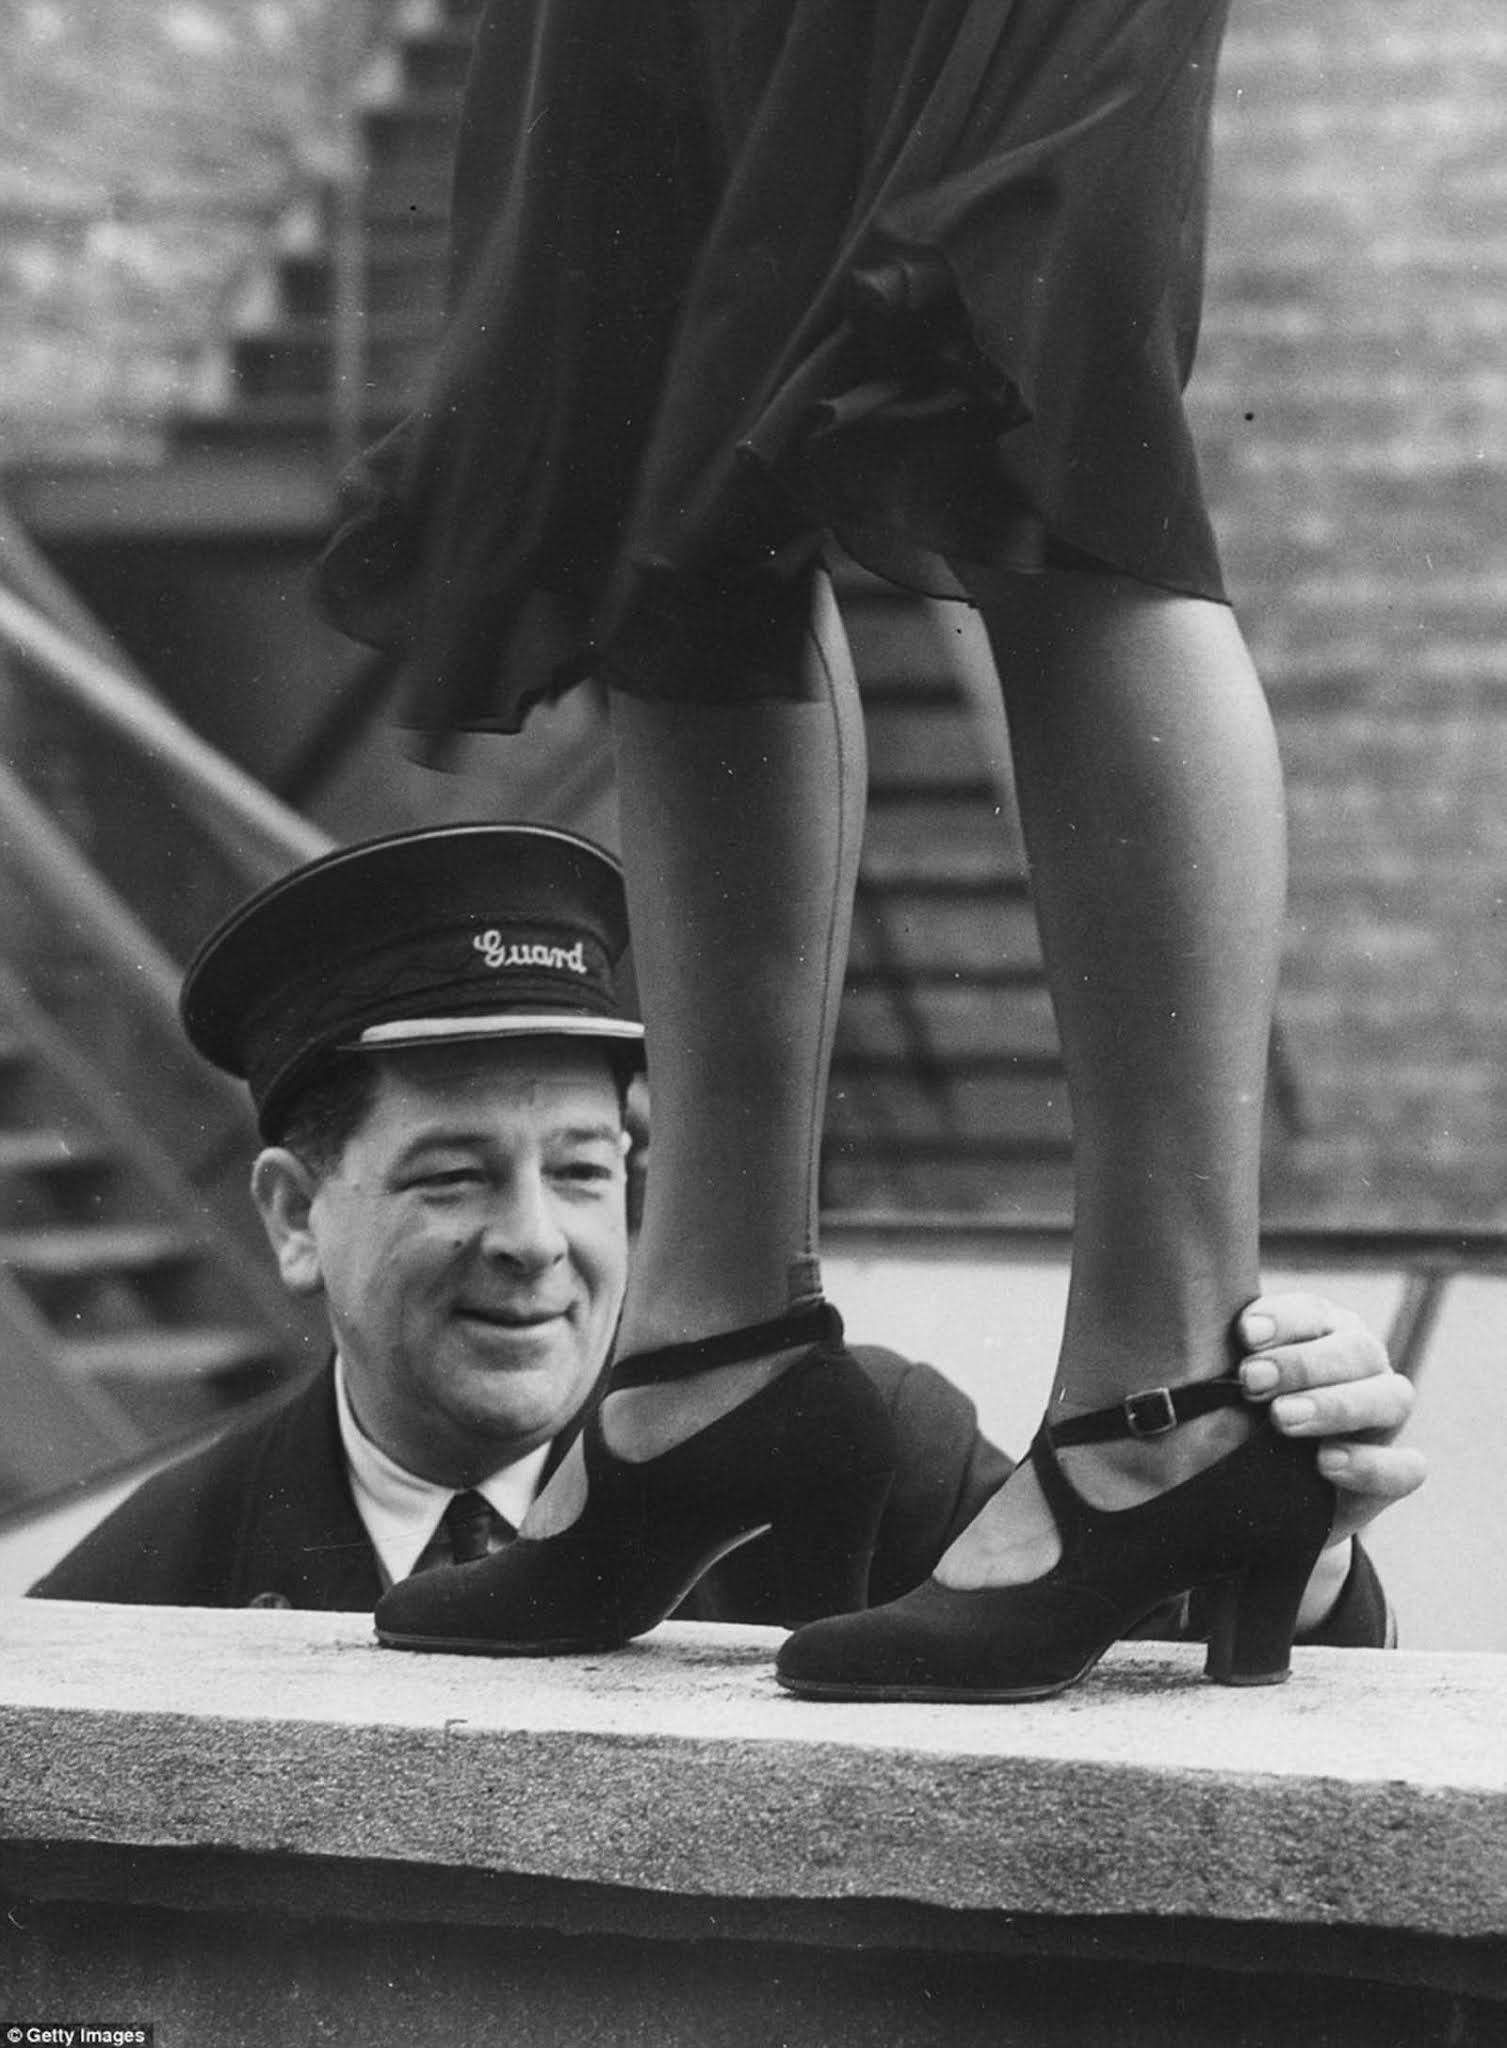 Railway guard George Wiltshire, judge of an ankle competition organised by the Women's Section of the British Railways Social Club at Oxford, with the winner, Elsie Chapman, in 1949.